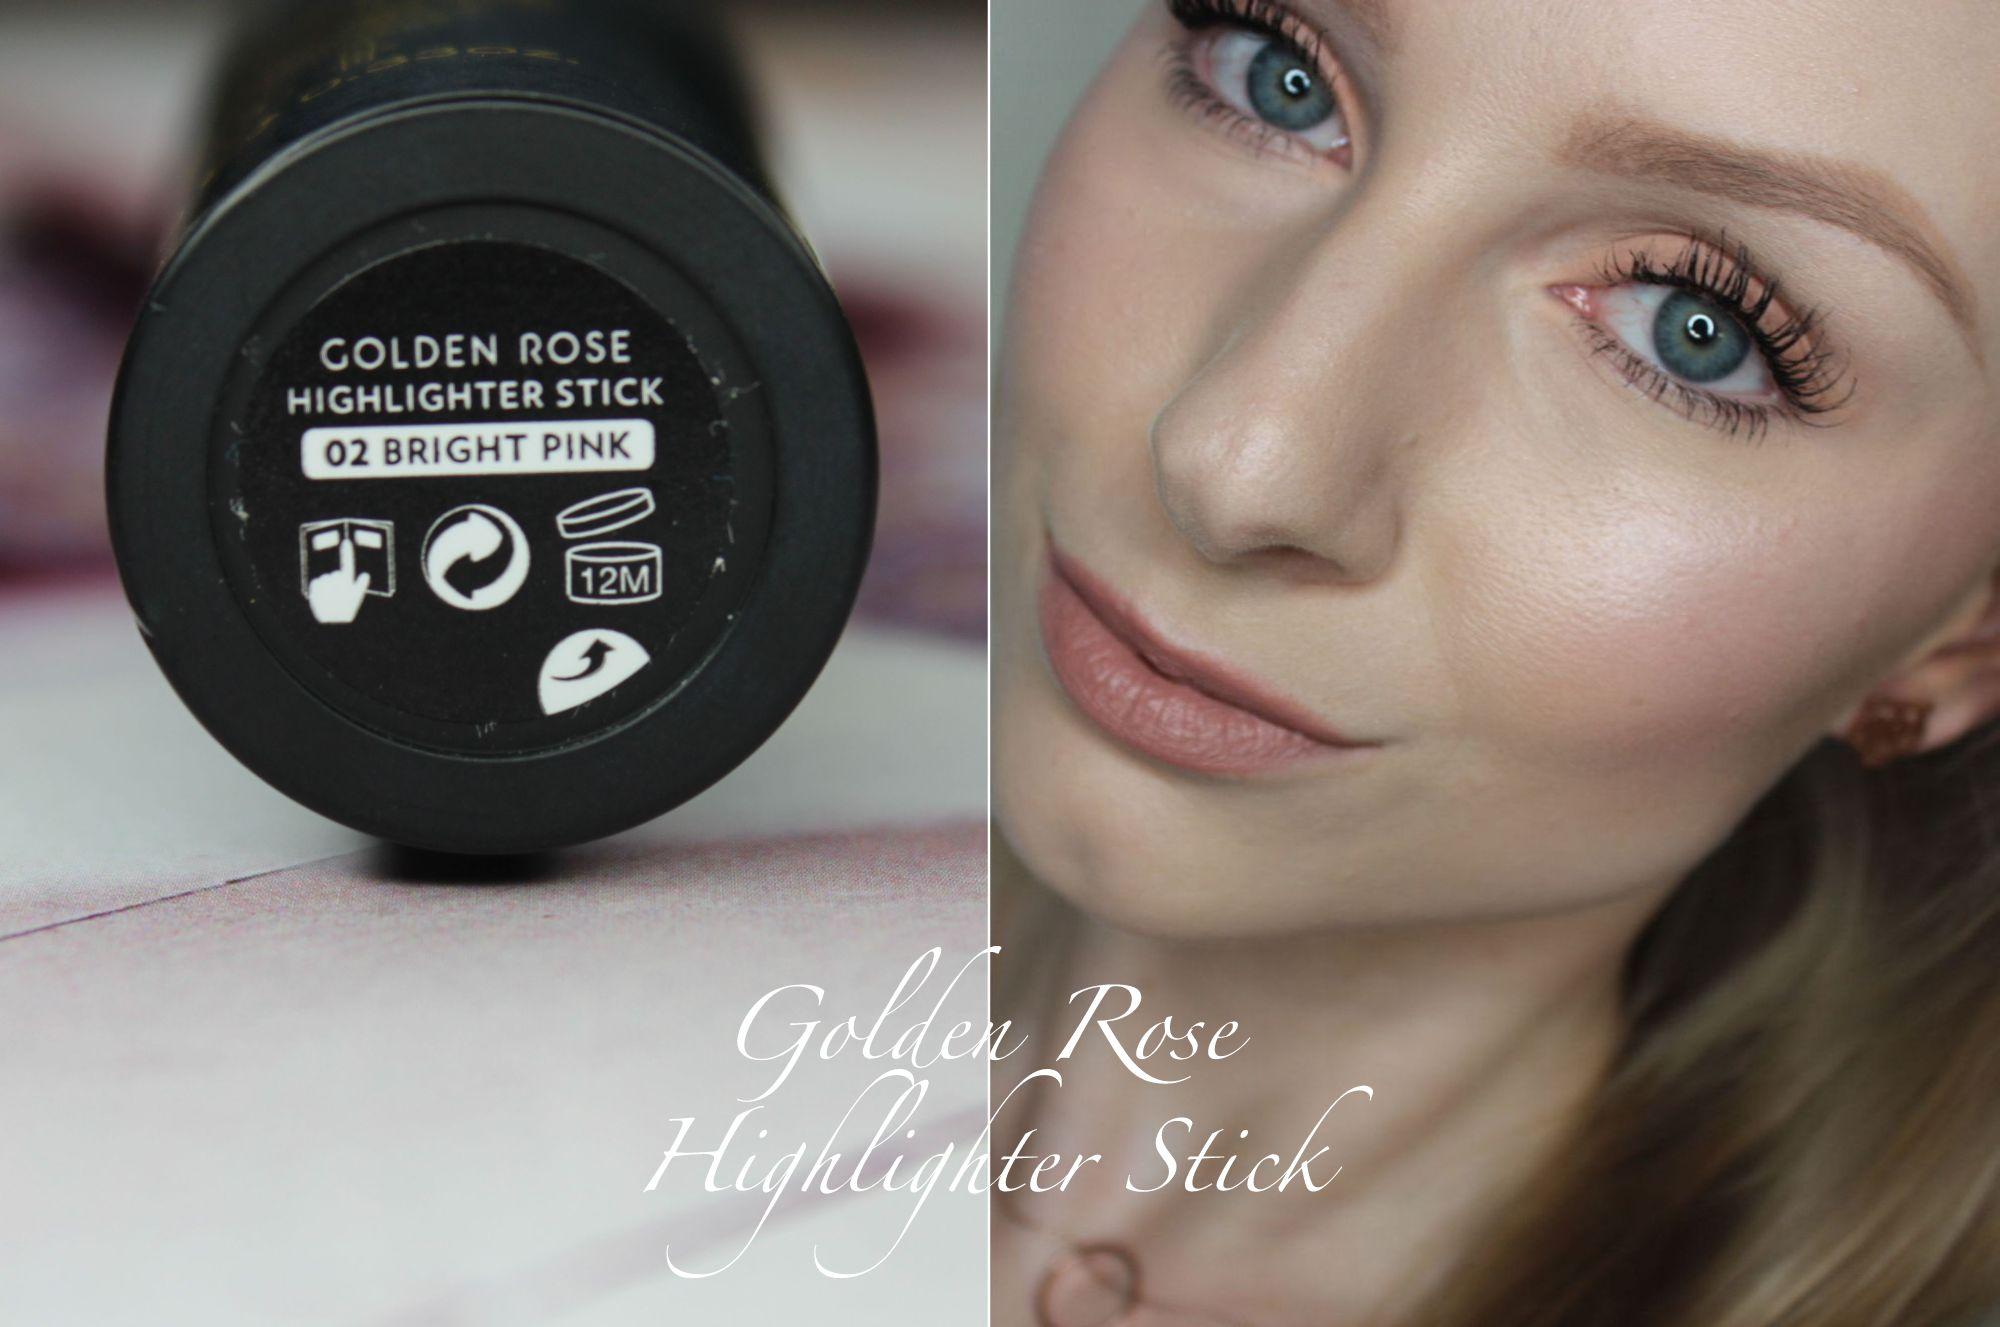 TOP 16 - Golden Rose Highlighter Stick in 02 Bright Pink 2